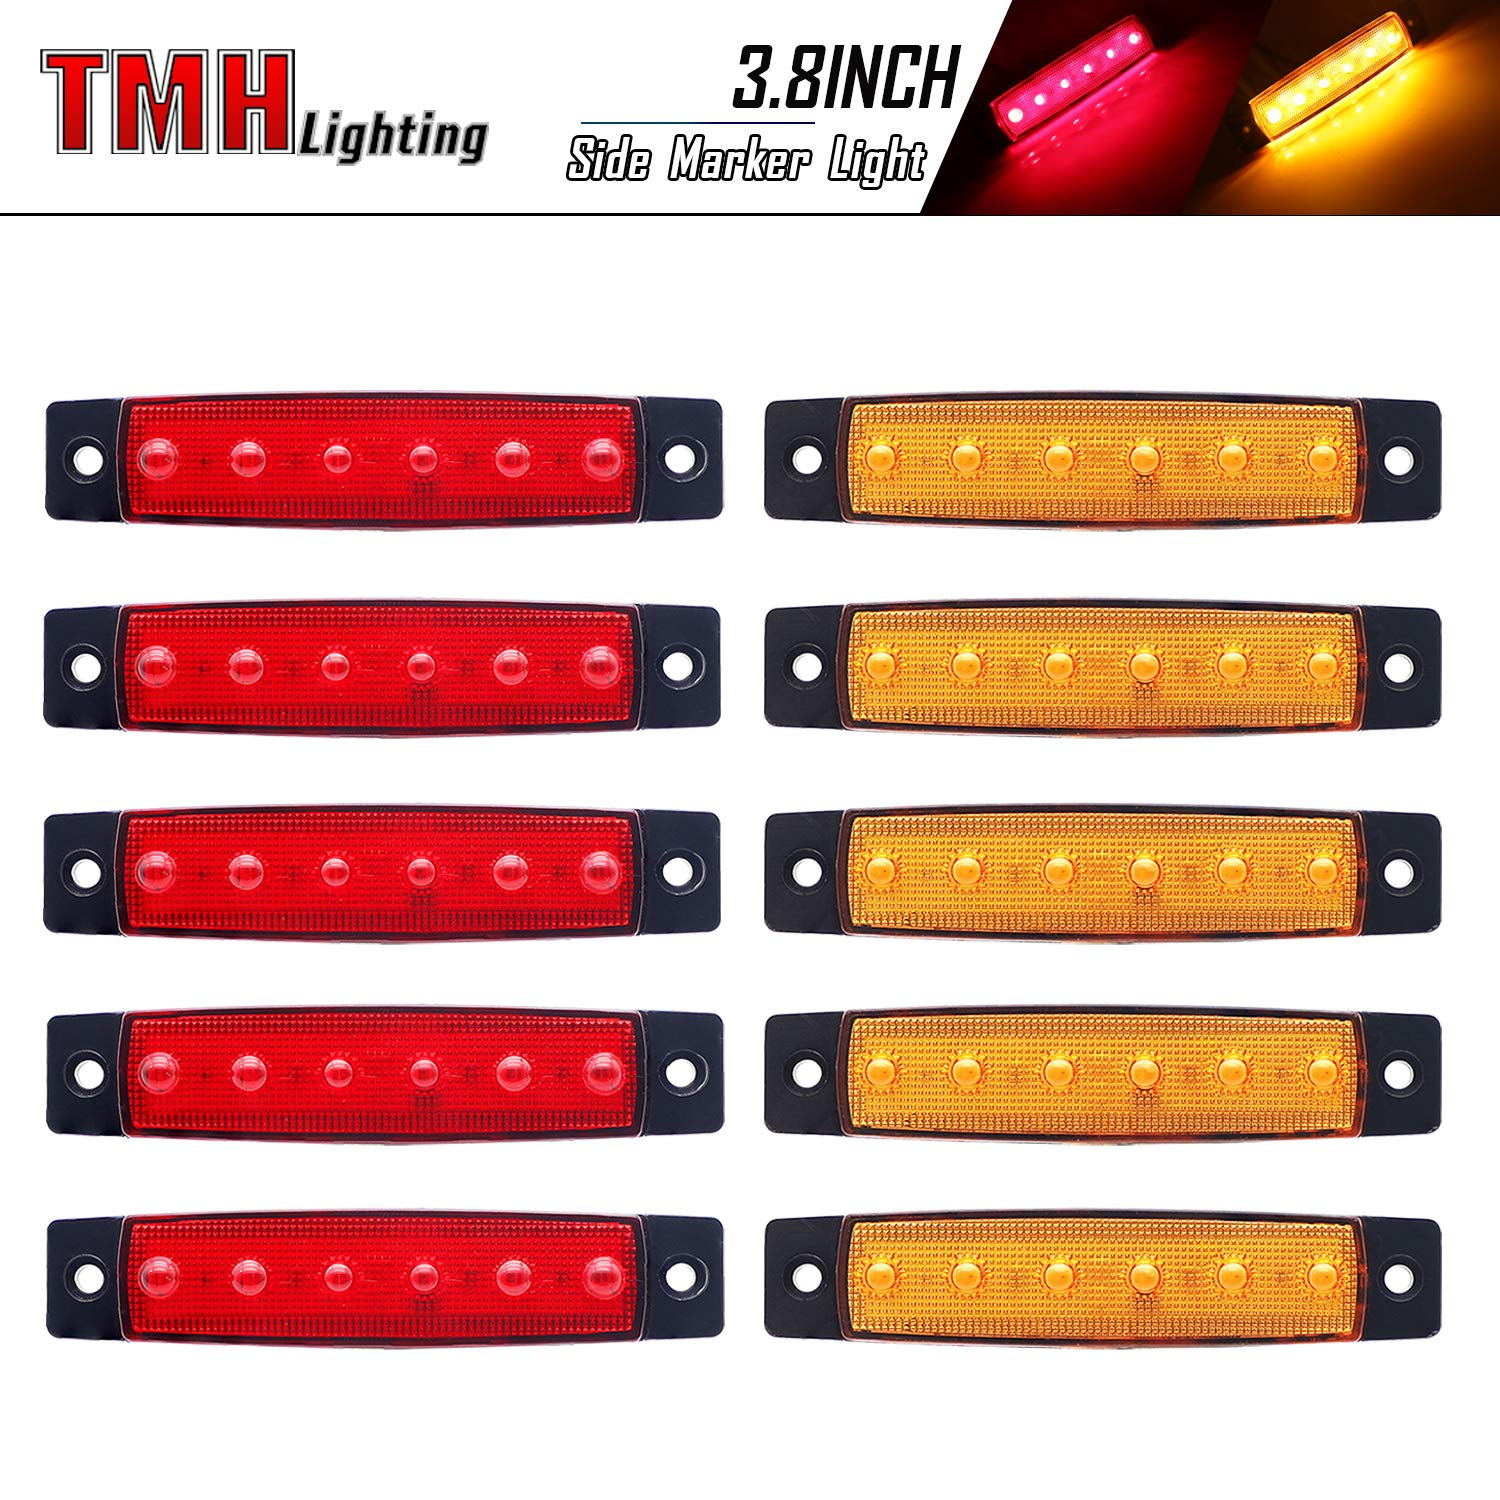 5 + 5 Trailer marker lights Marker light amber Truck cab marker lights Rear side marker light 10 pcs TMH 3.8 6 LED Red /& Amber Side Led Marker RV marker light Led marker lights for trucks